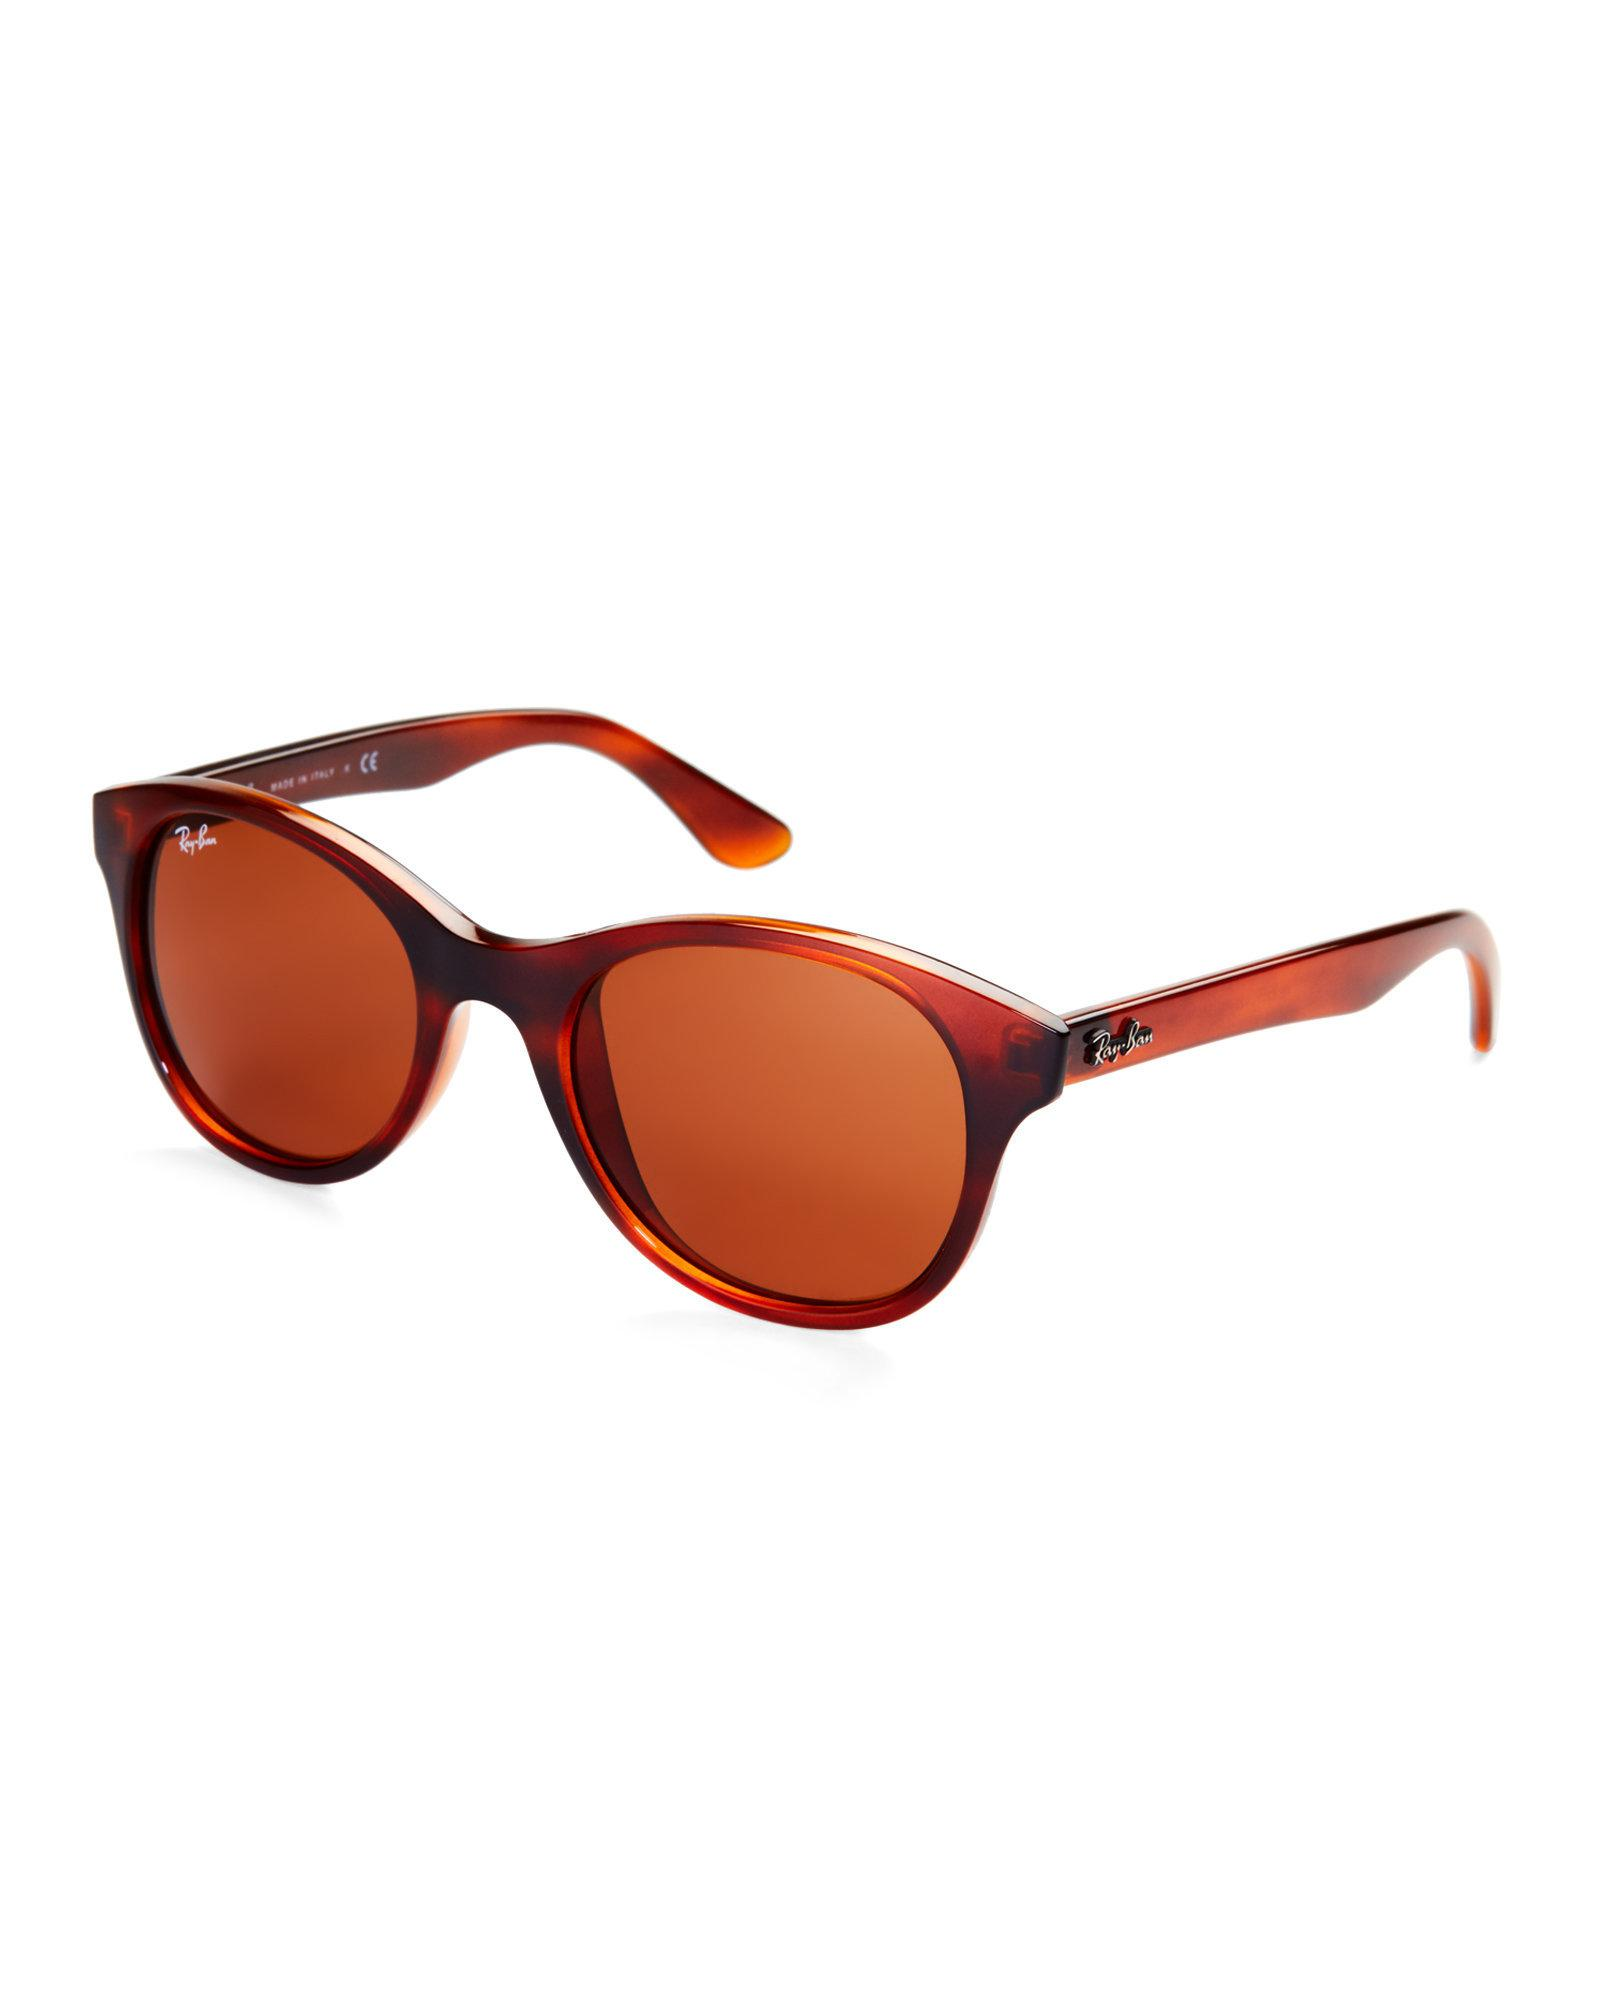 f5c73e3259 Lyst - Ray-Ban Rb4203 Tortoiseshell-Look Round Sunglasses in Brown